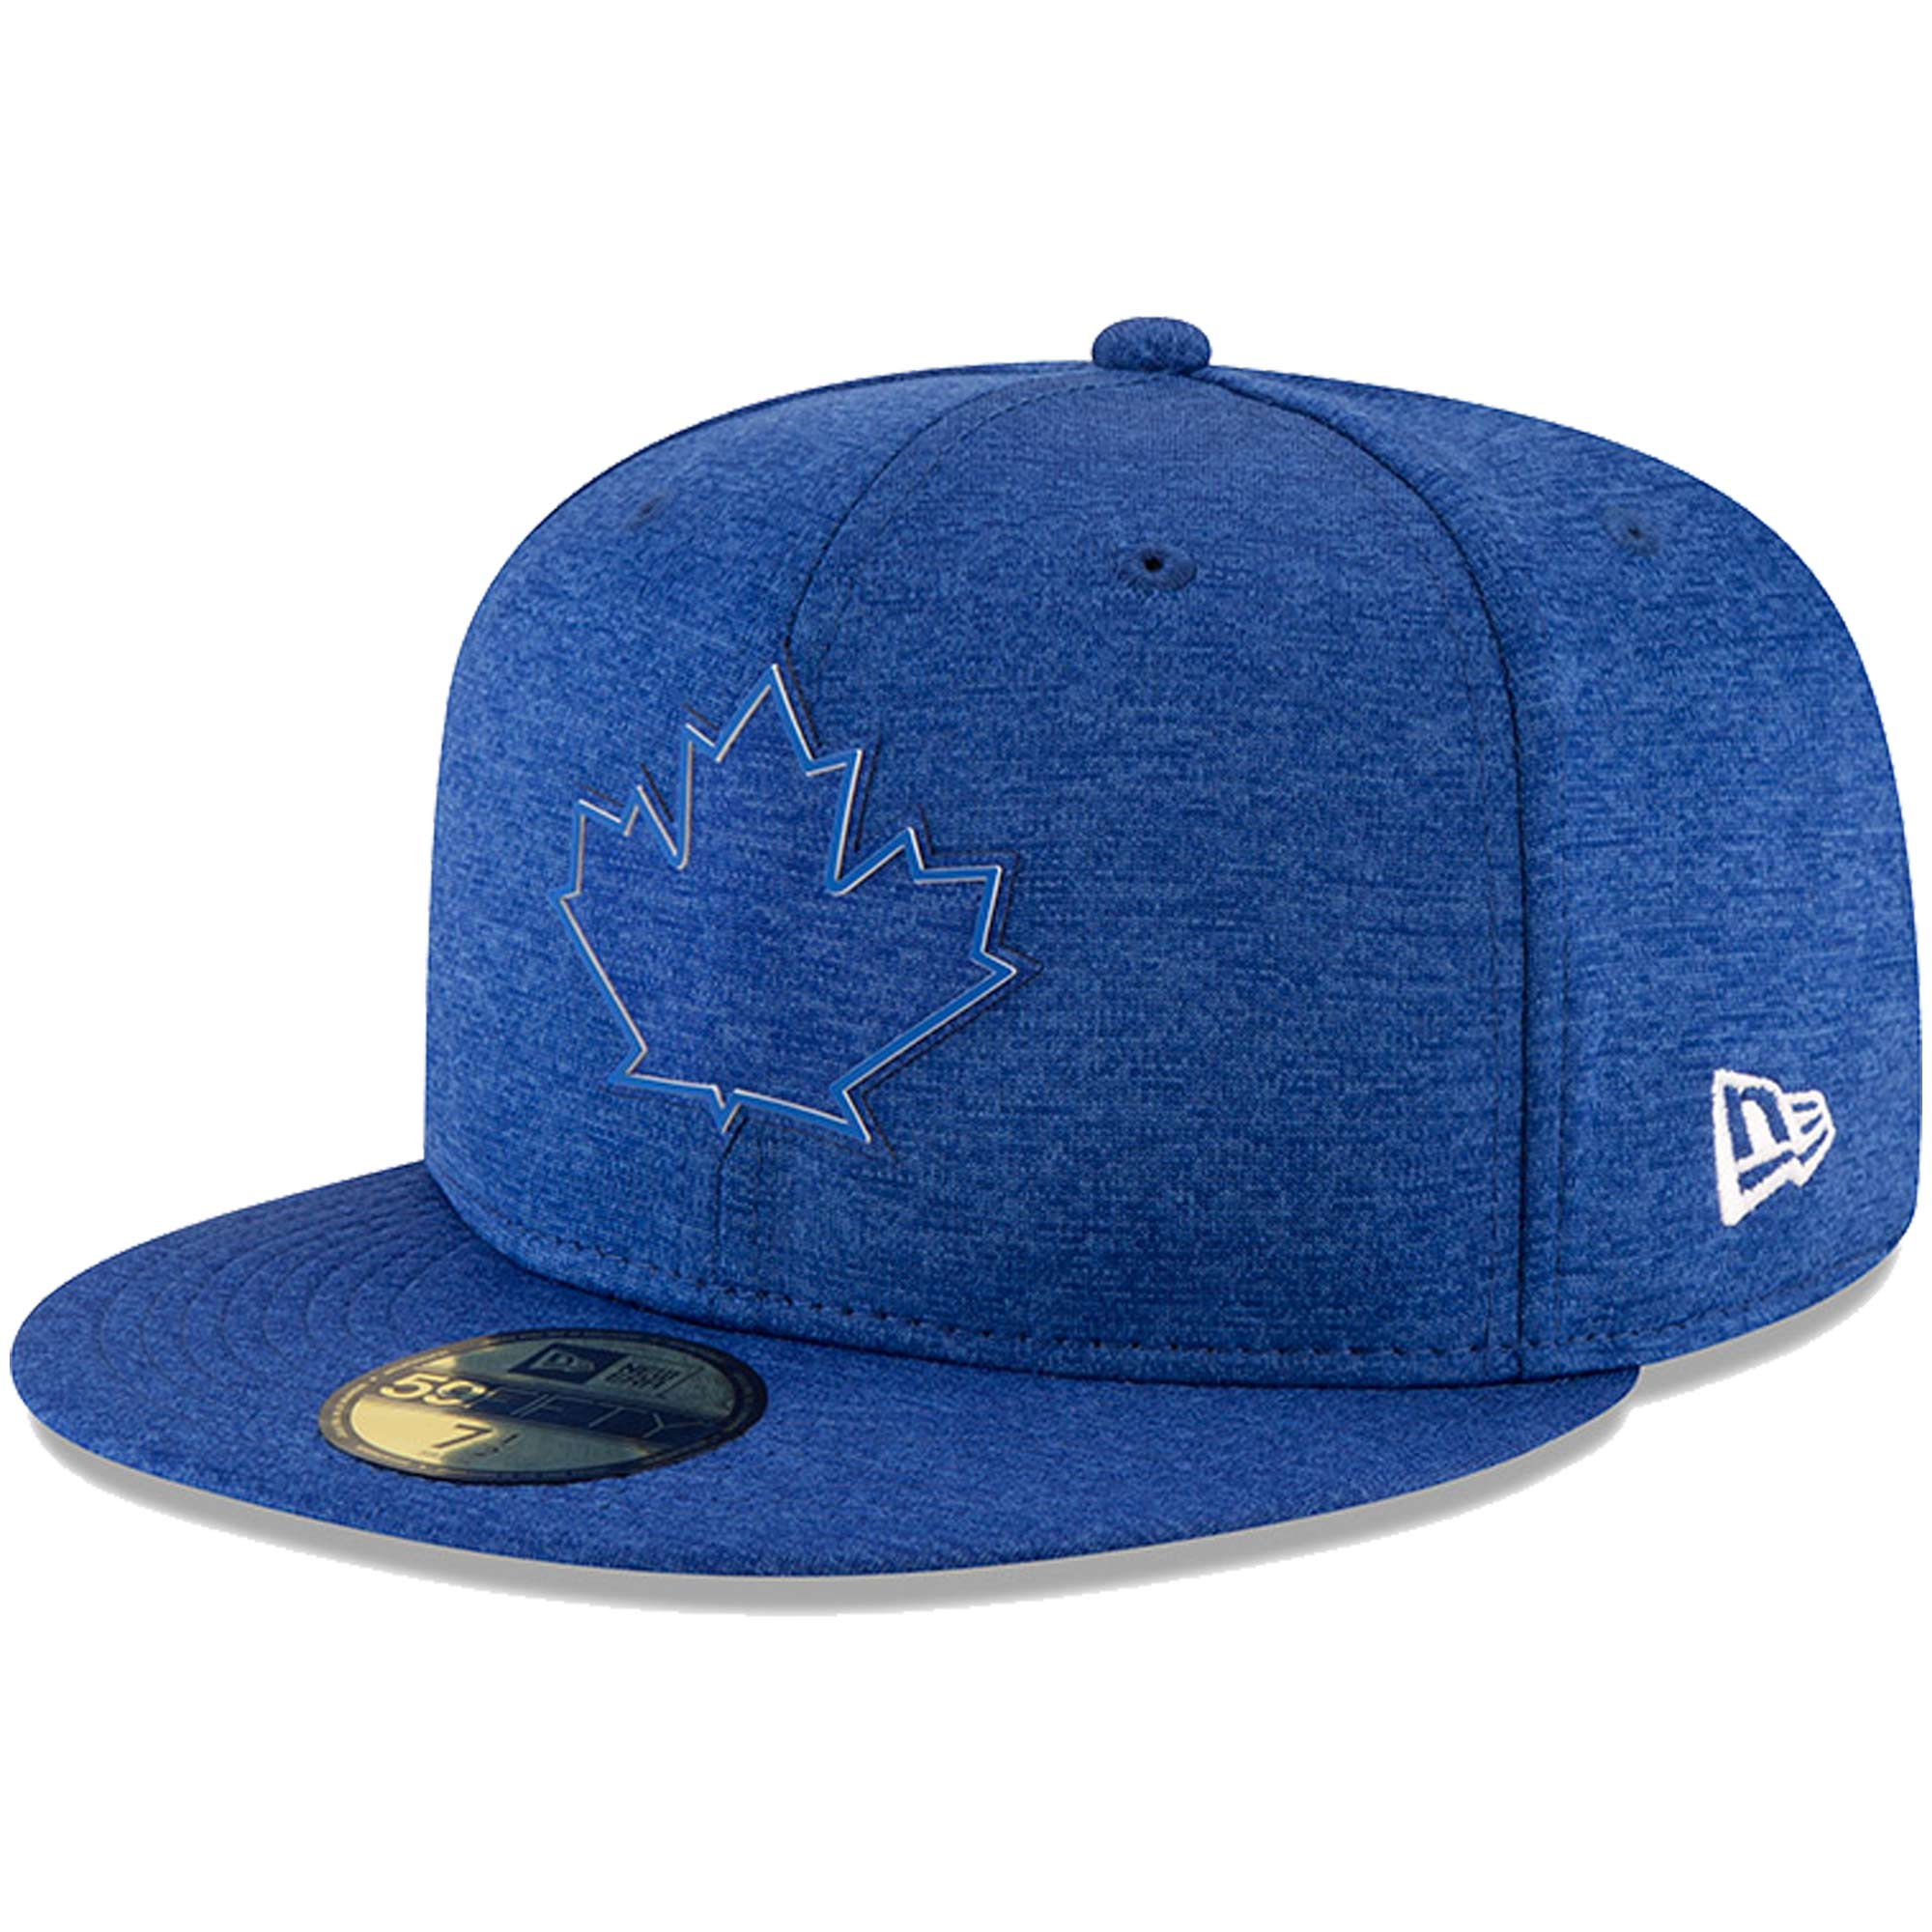 Toronto Blue Jays New Era 2018 Clubhouse Collection 59FIFTY Fitted Hat - Heather Royal